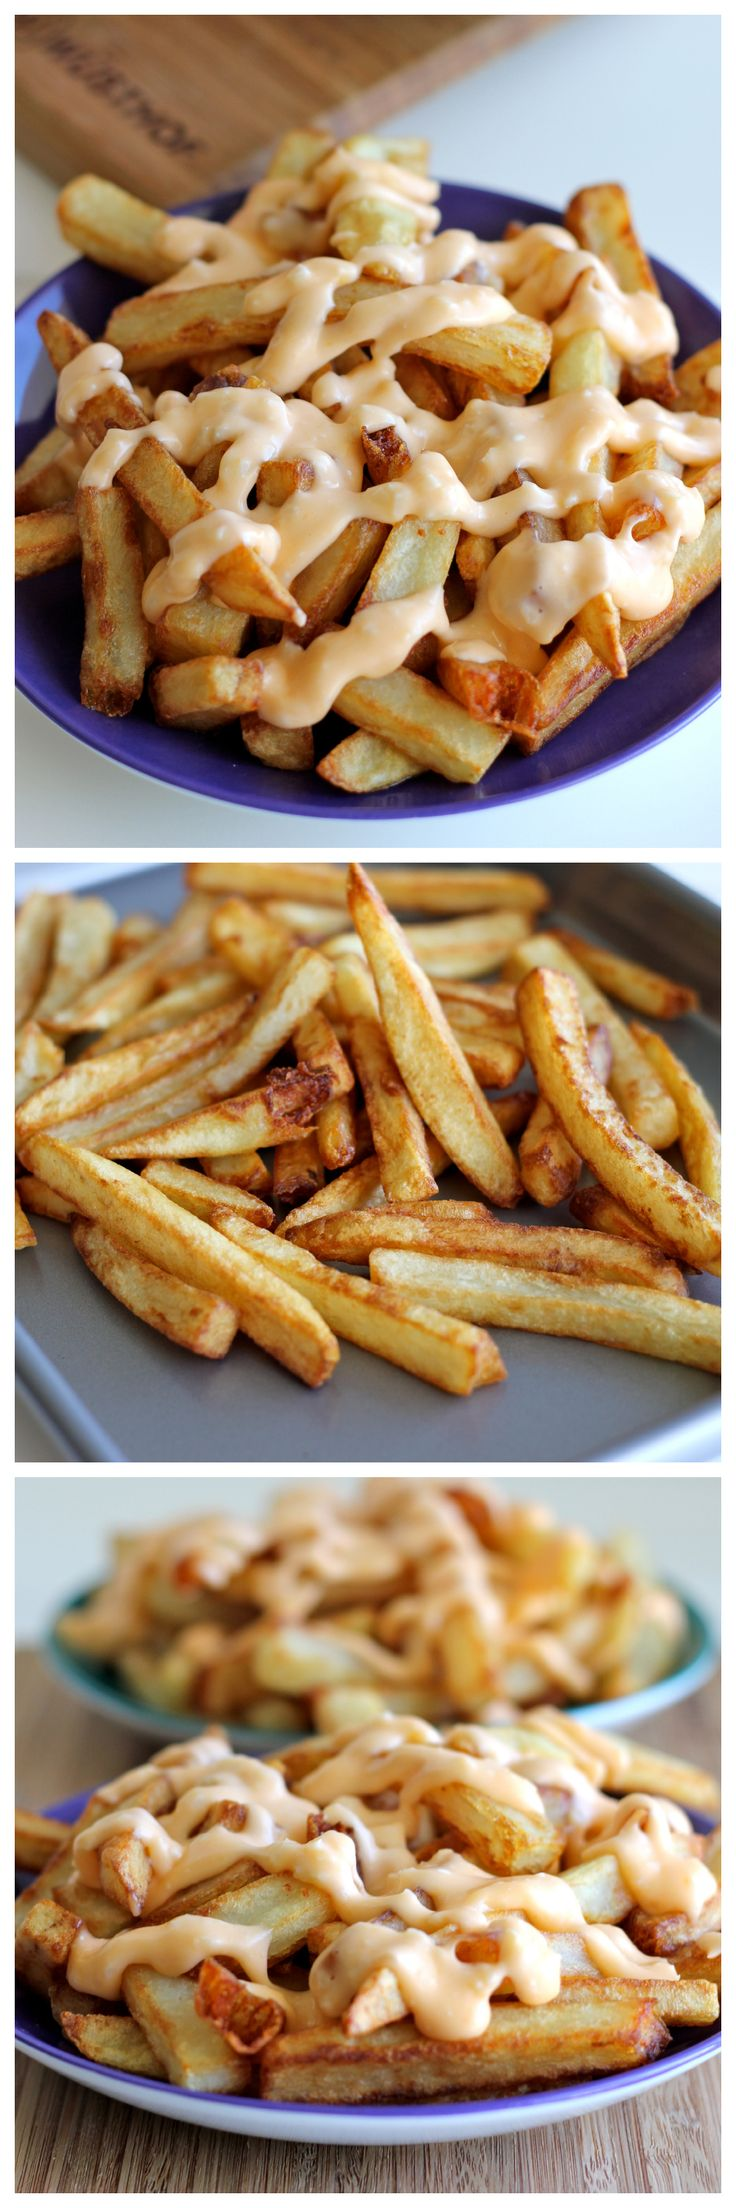 Garlic Cheese Fries - Perfectly double-fried french fries smothered in a garlic cheese sauce that can be made in 5 minutes!